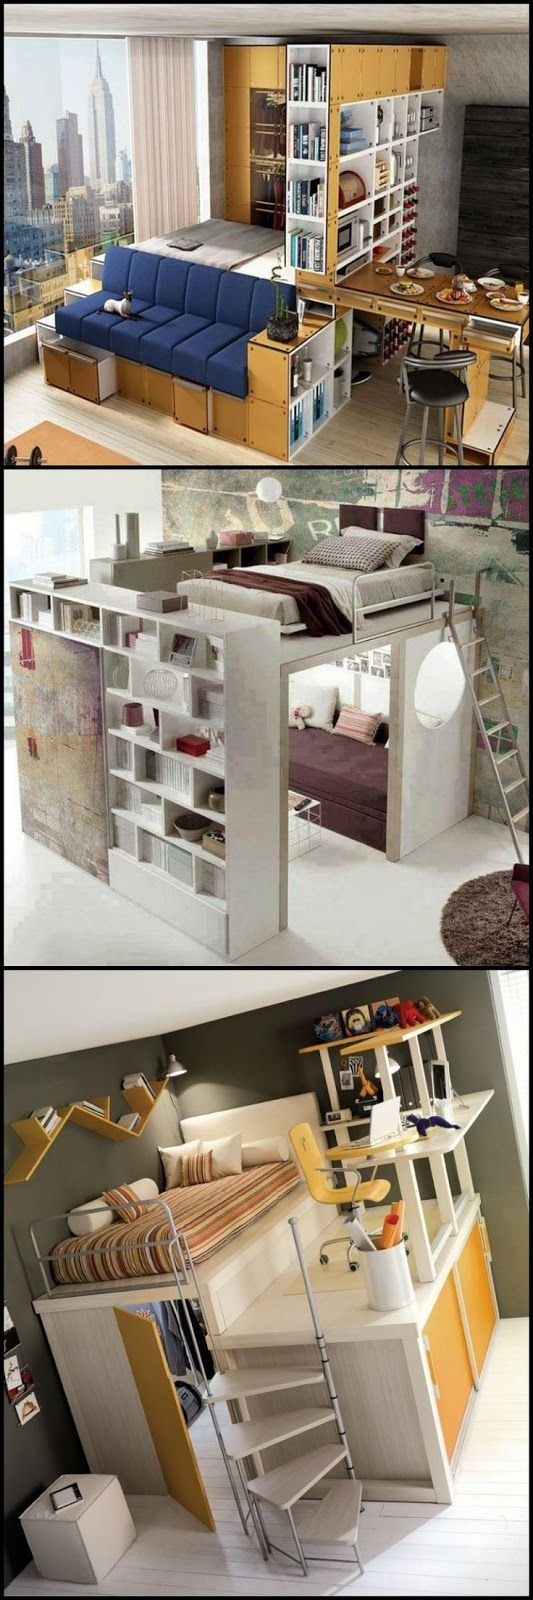 Small space living marriage pinterest house bedroom and home